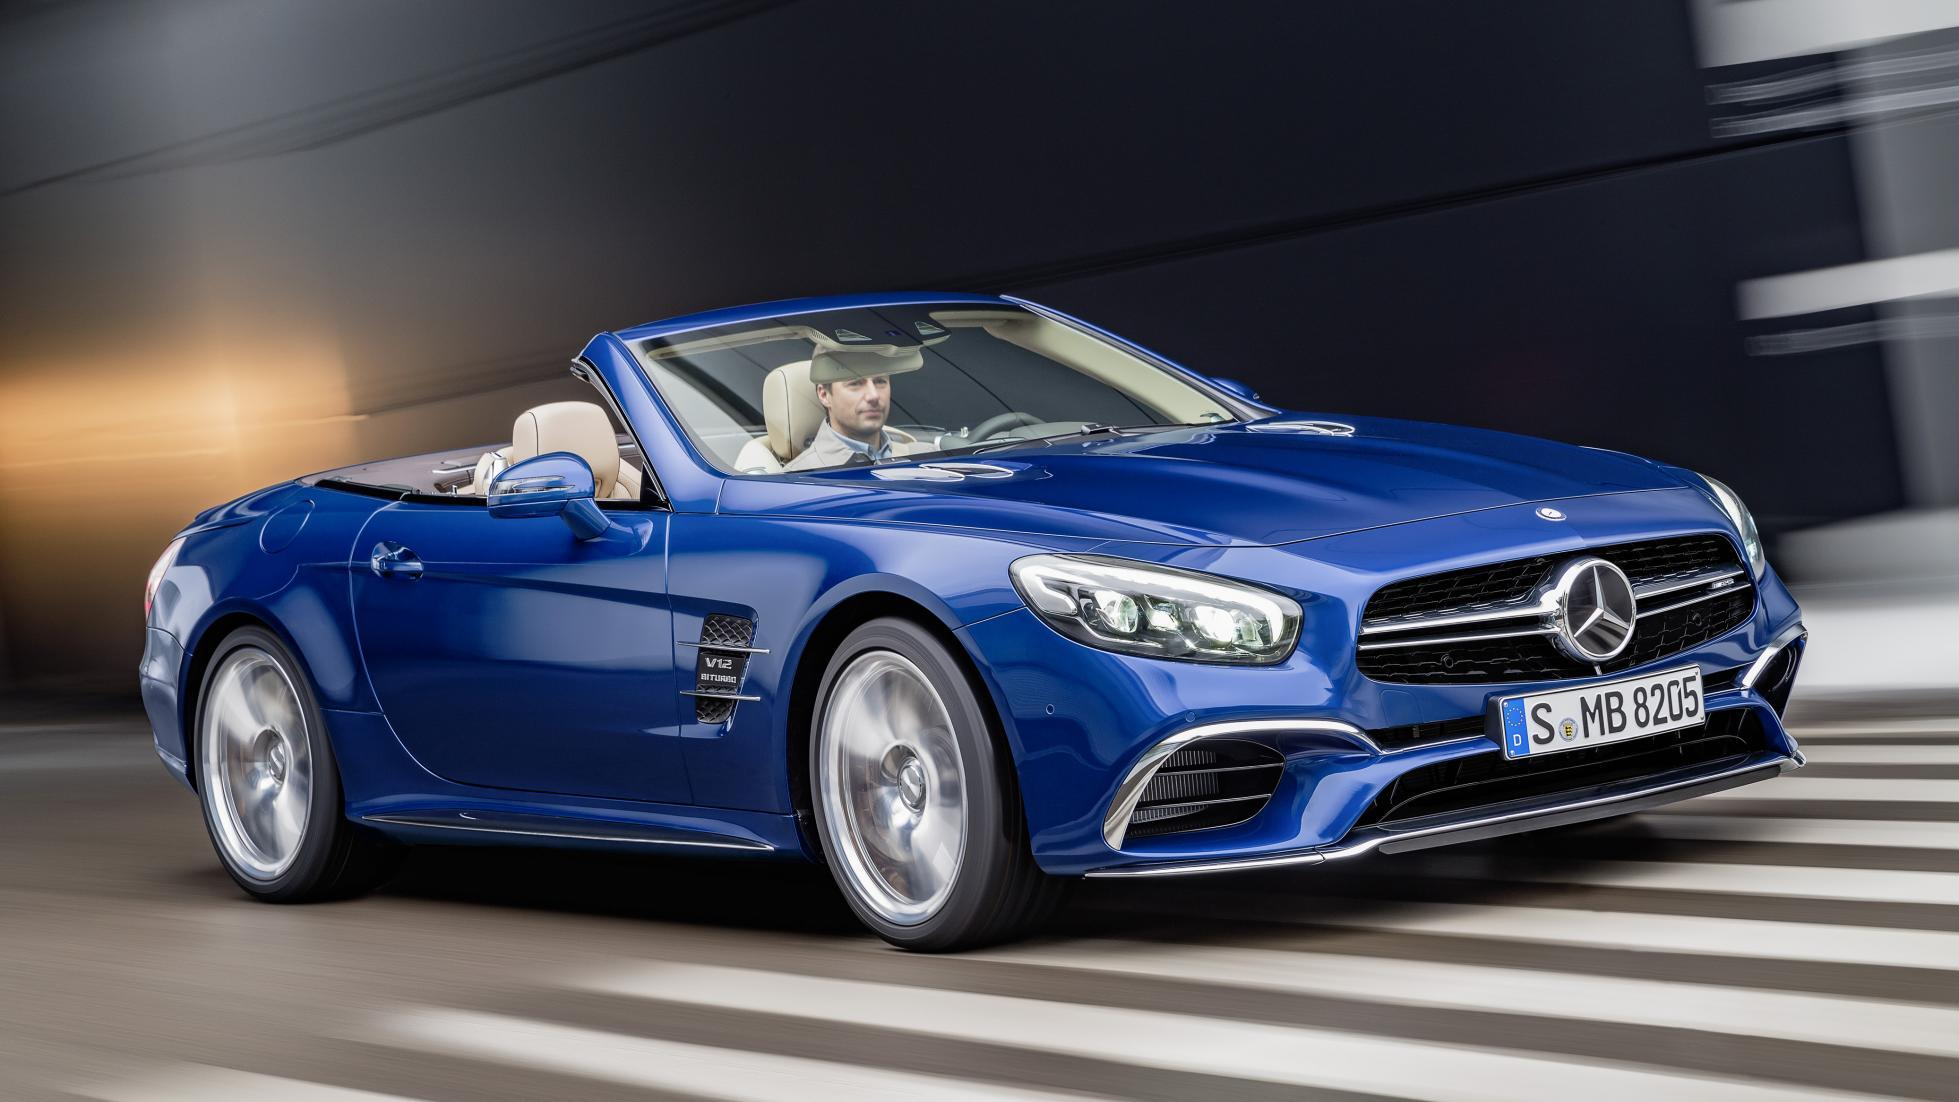 The new Merc SL is faster, prettier and (nearly) drives itself